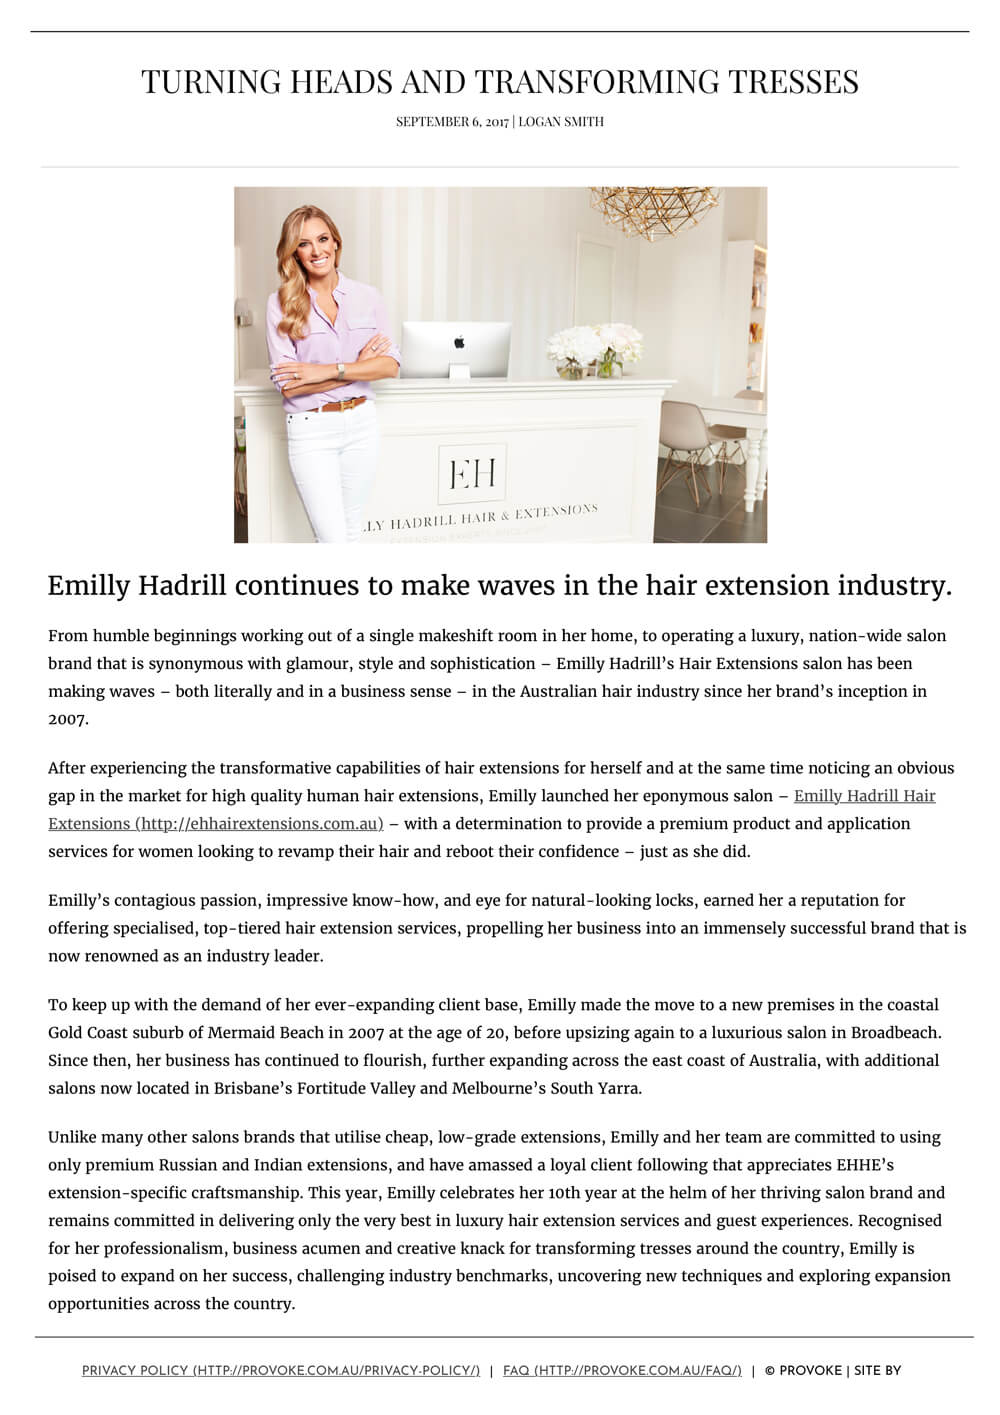 Provoke | Emilly Hadrill: Hair Extensions in Gold Coast, Brisbane, Melbourne & Sydney | 9